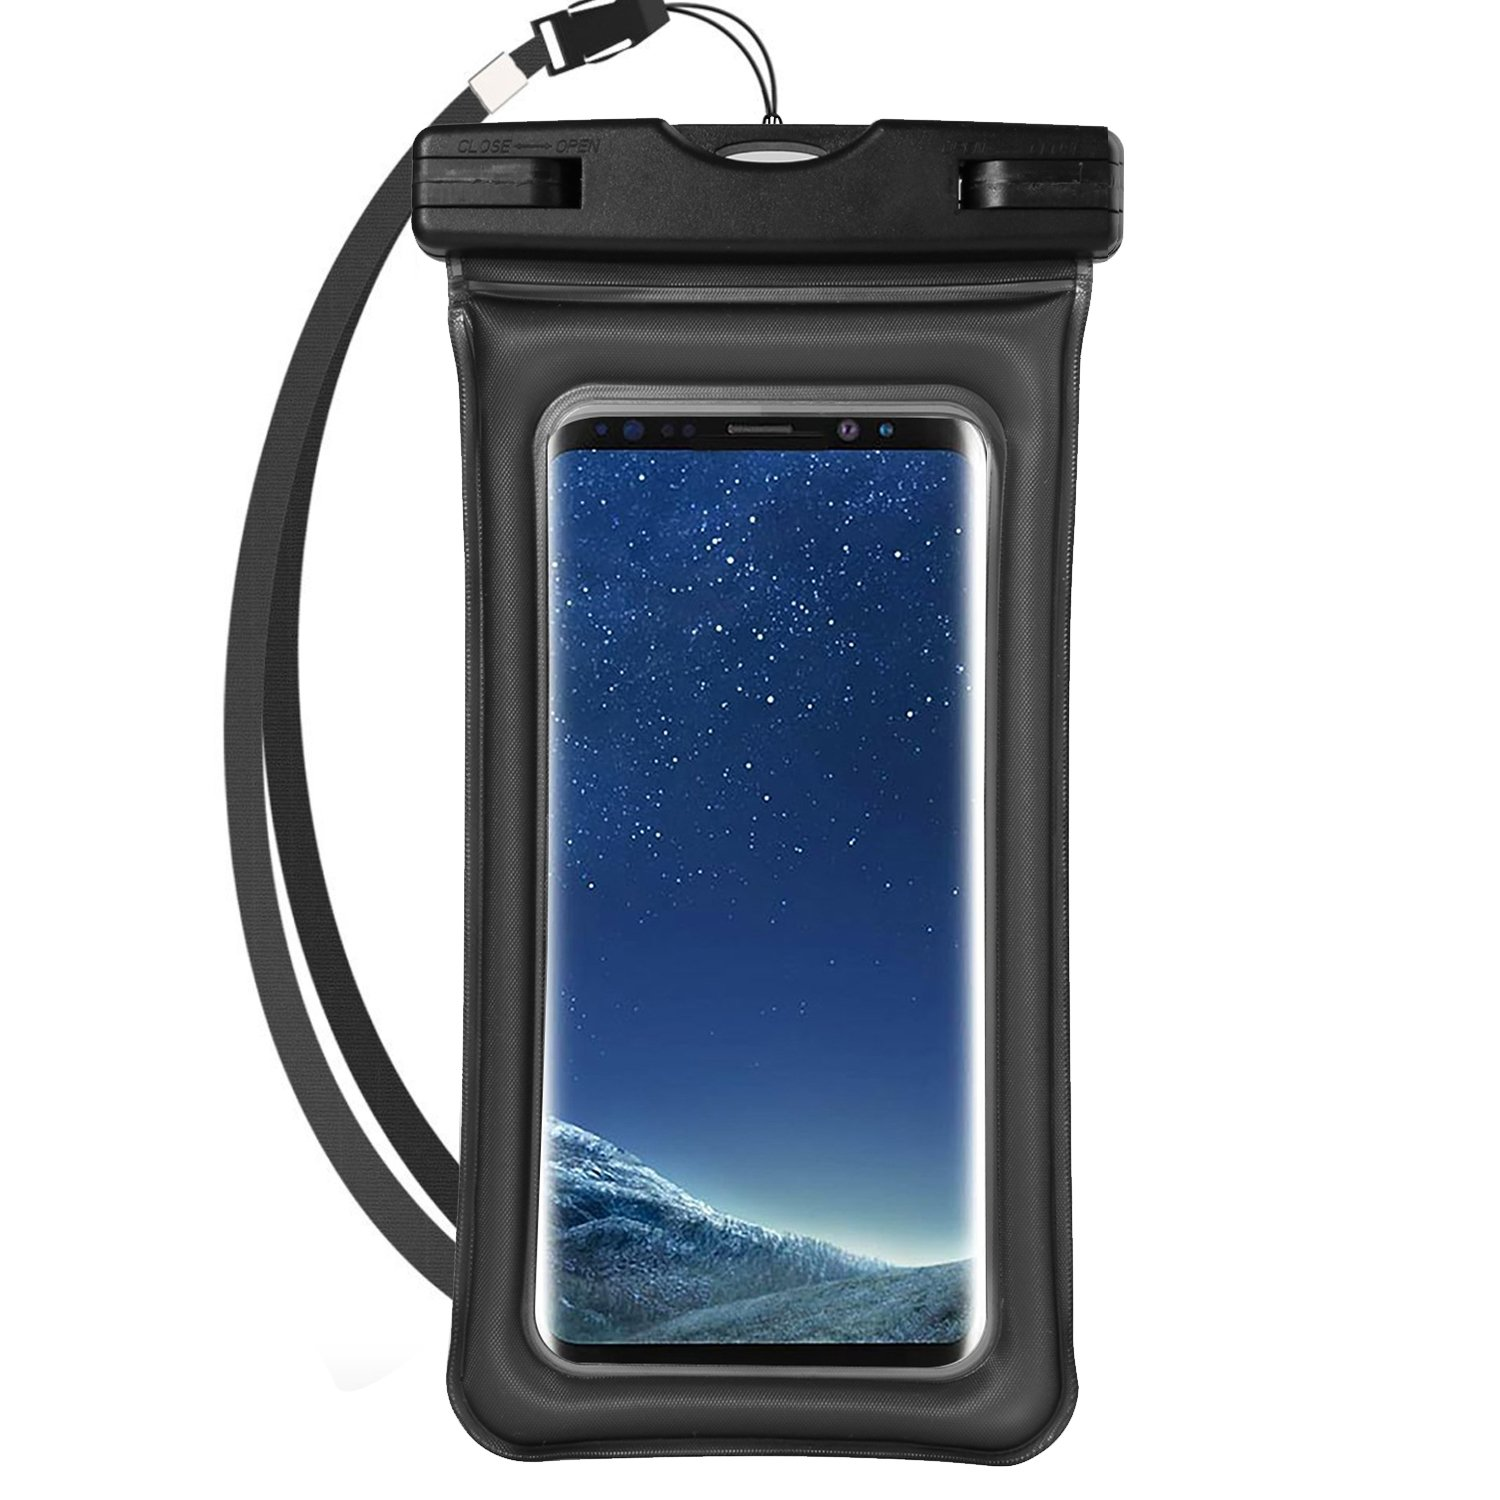 Universal Airbag Cellphone Waterproof Dry Bag Pouch w/Armband & Lanyard for Samsung Galaxy S9+ S9 S8+ S8/Note 8/A5 A7 A8 J5 J7/Nokia 7 Plus 5 6 8/HTC Desire 12/U11 EYEs/U11+ (Black)